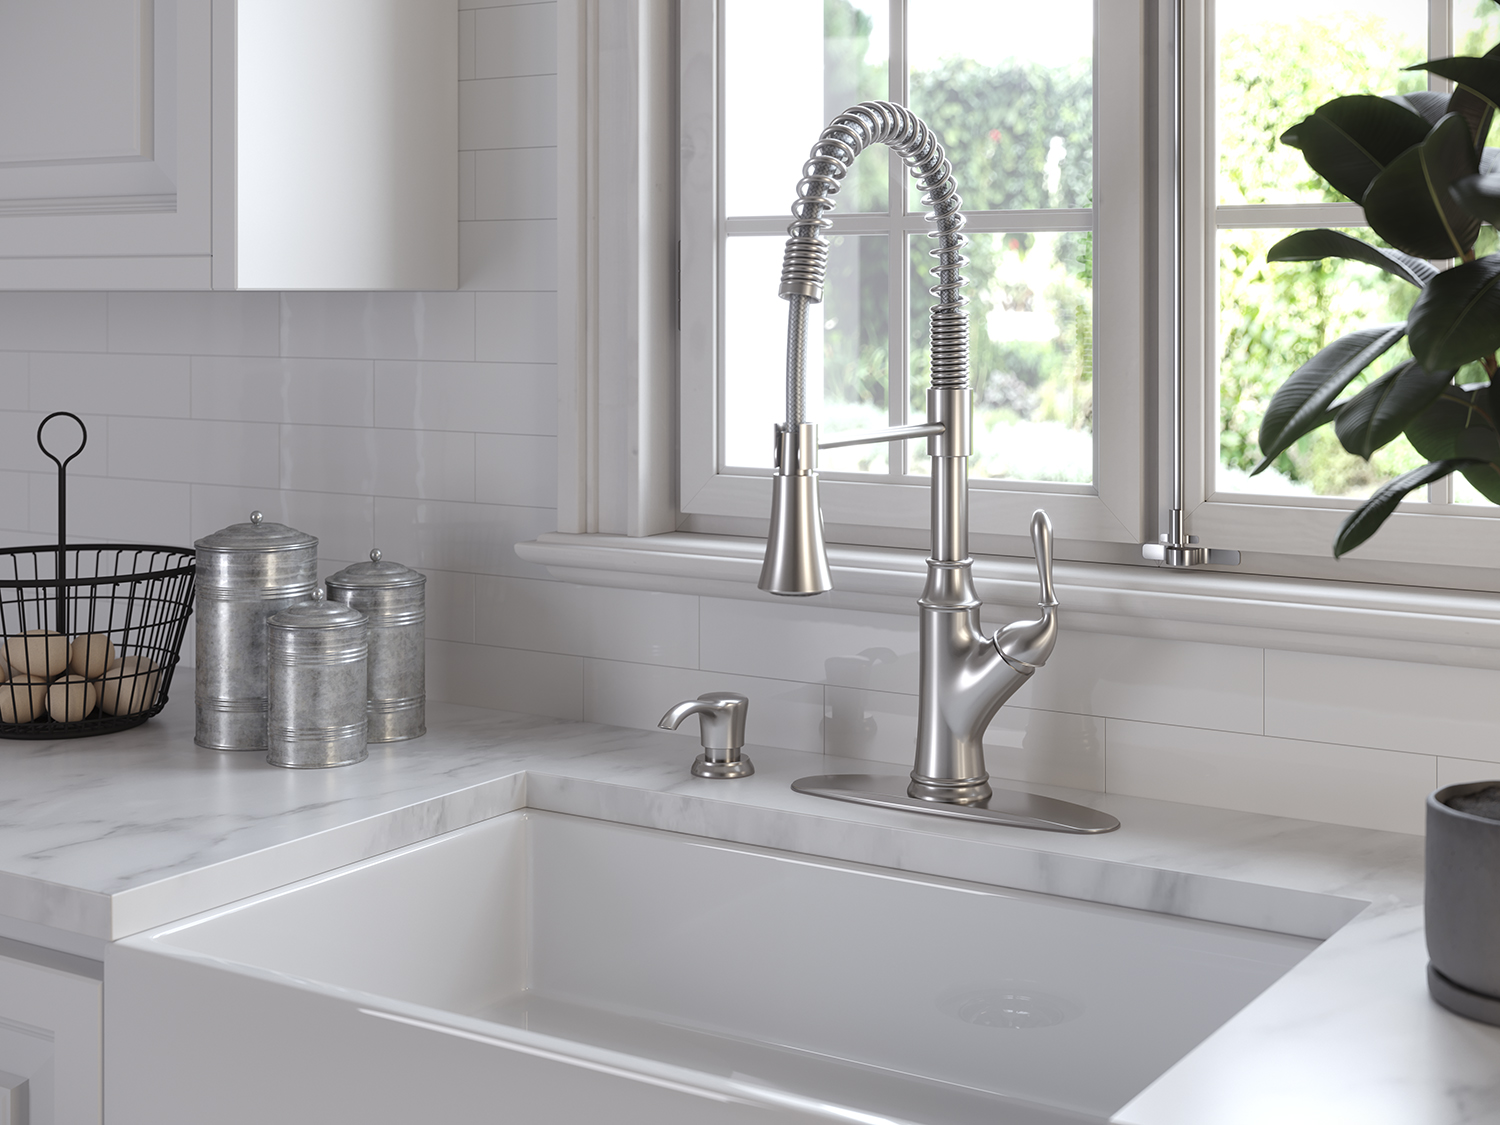 The Orono Culinary Kitchen Faucet Pfister Faucets